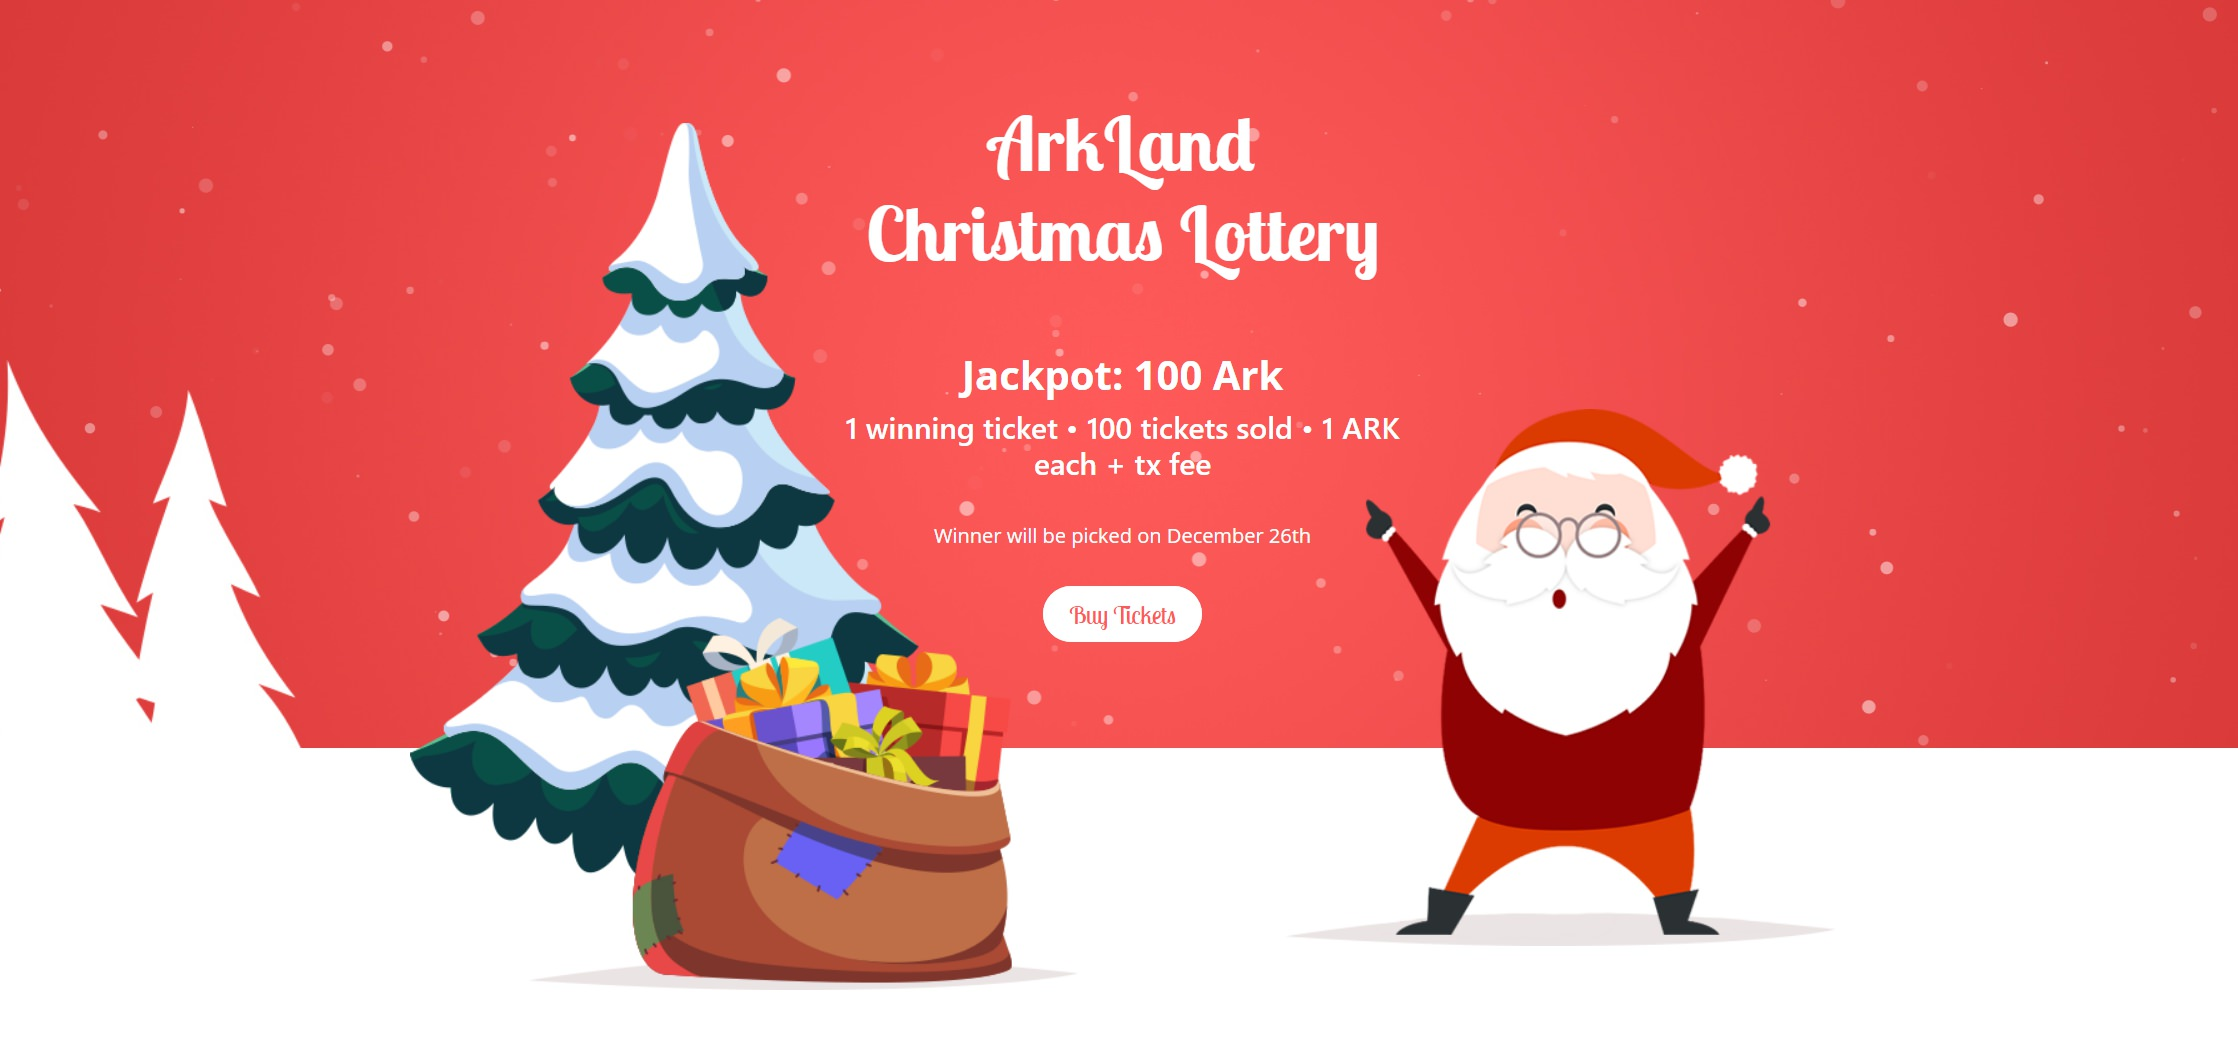 Our first Christmas Lottery runs on the Ark's smart bridges! There are 100 tickets available, from 000 to 099, and each ticket costs 1 Ark (1.1 Ark including the transaction fee). Drawings will happen on December 26th, at midnight EST time (UTC -5), and one lucky winner will be awarded up to 100 Ark!